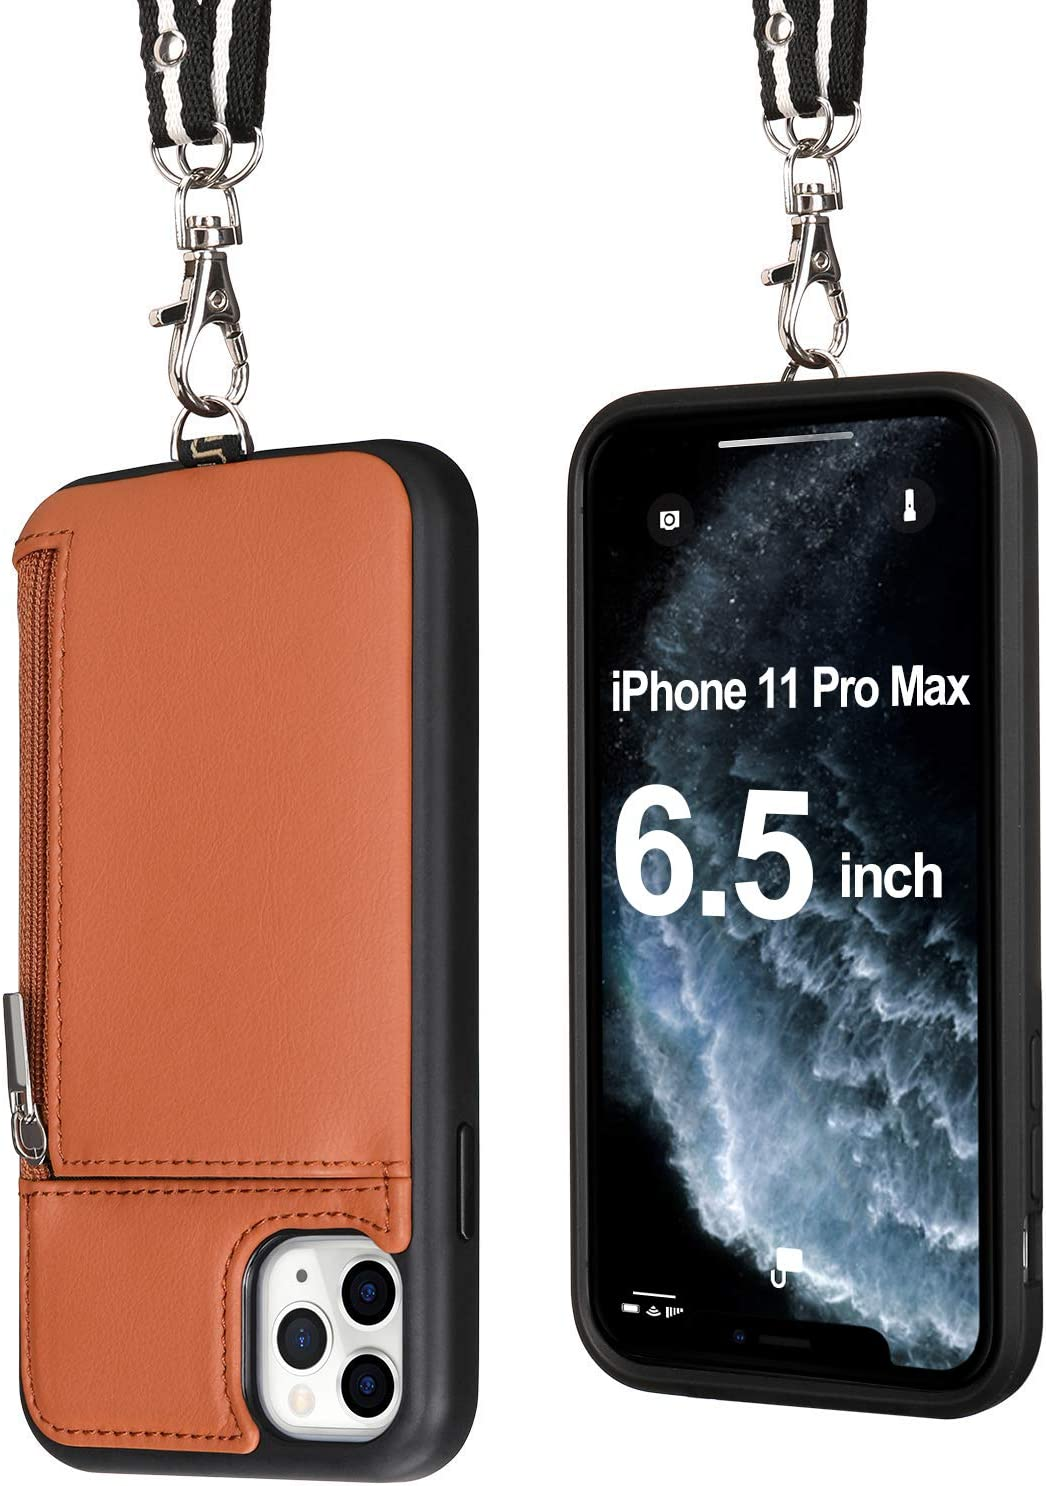 Labato iPhone 11 Pro Max Leather Necklace Lanyard Strap Case with Card Holder, iPhone 11 Pro Max Wallet Case with Strap Zipper Shockproof Travel Strap Card Case for Apple 11 Pro Max 6.5 inch Brown